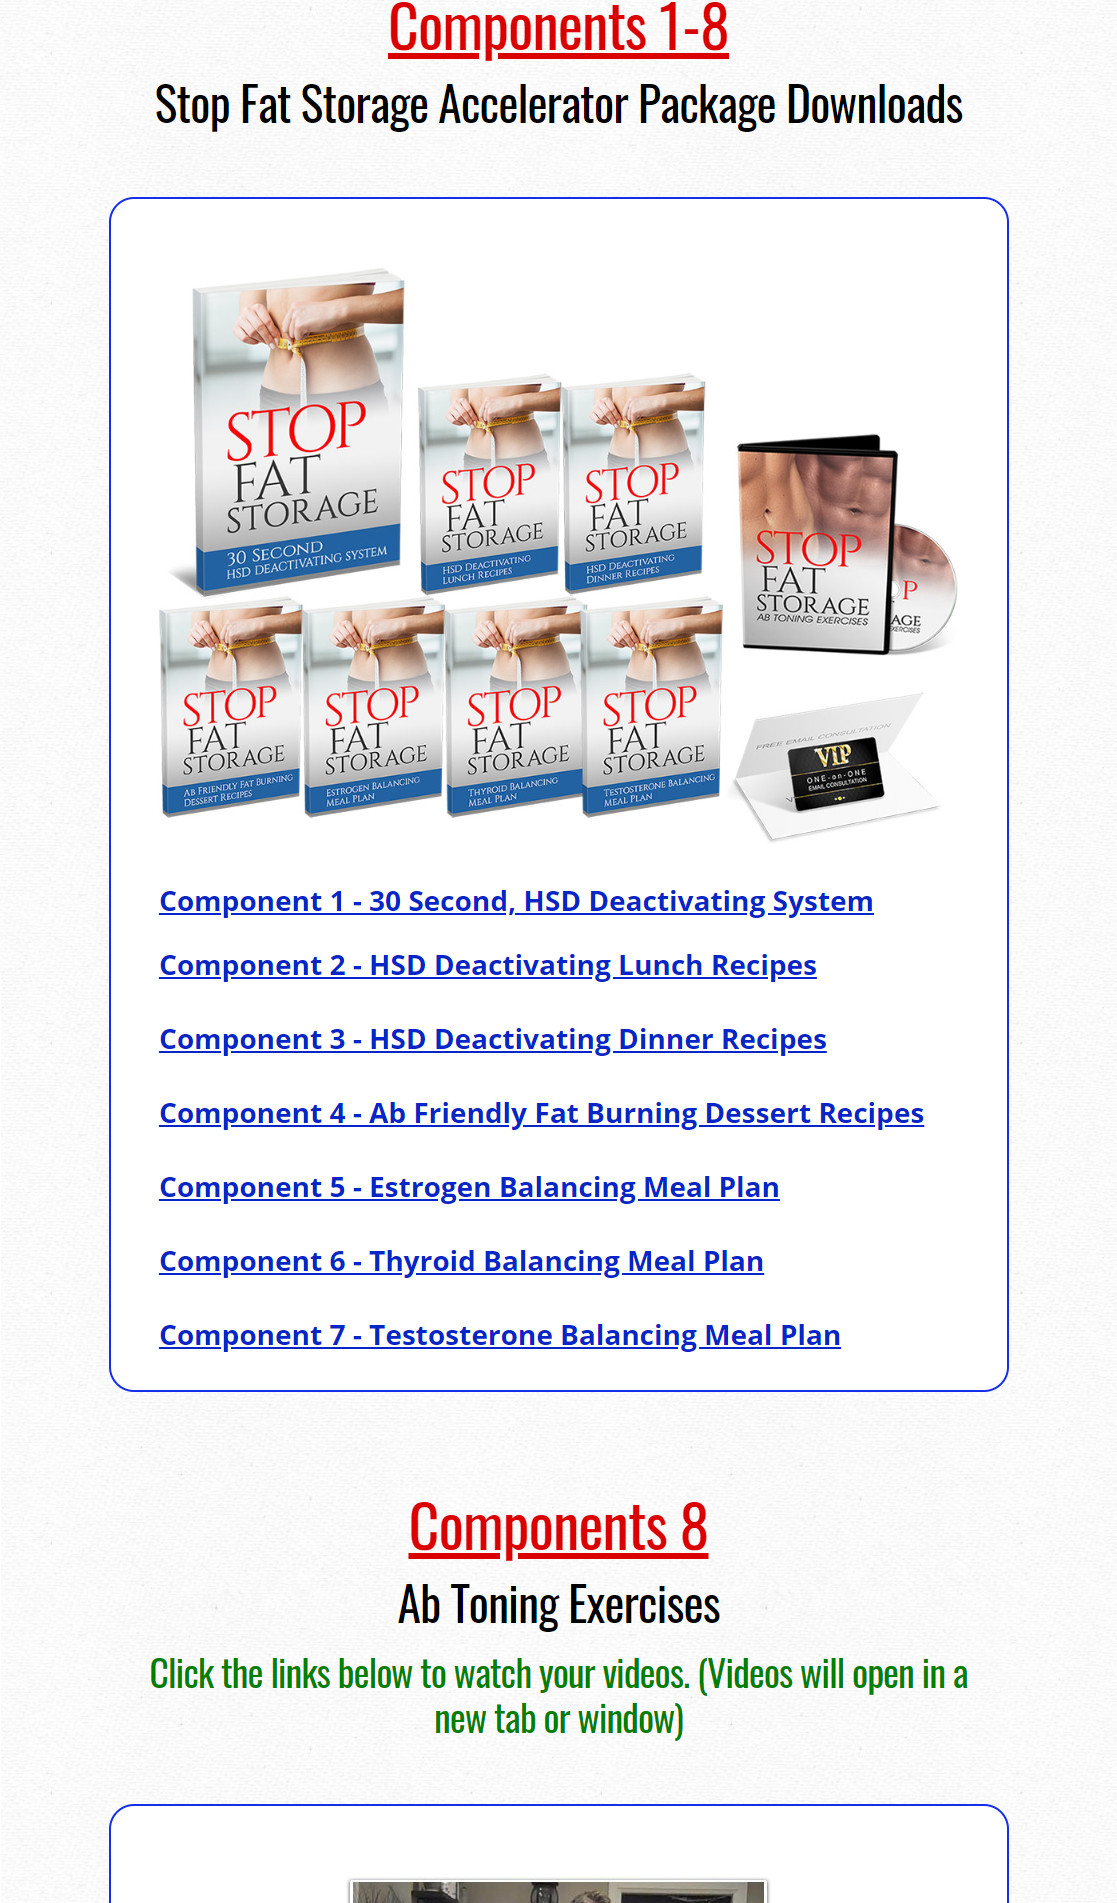 Stop Fat Storage Download Page